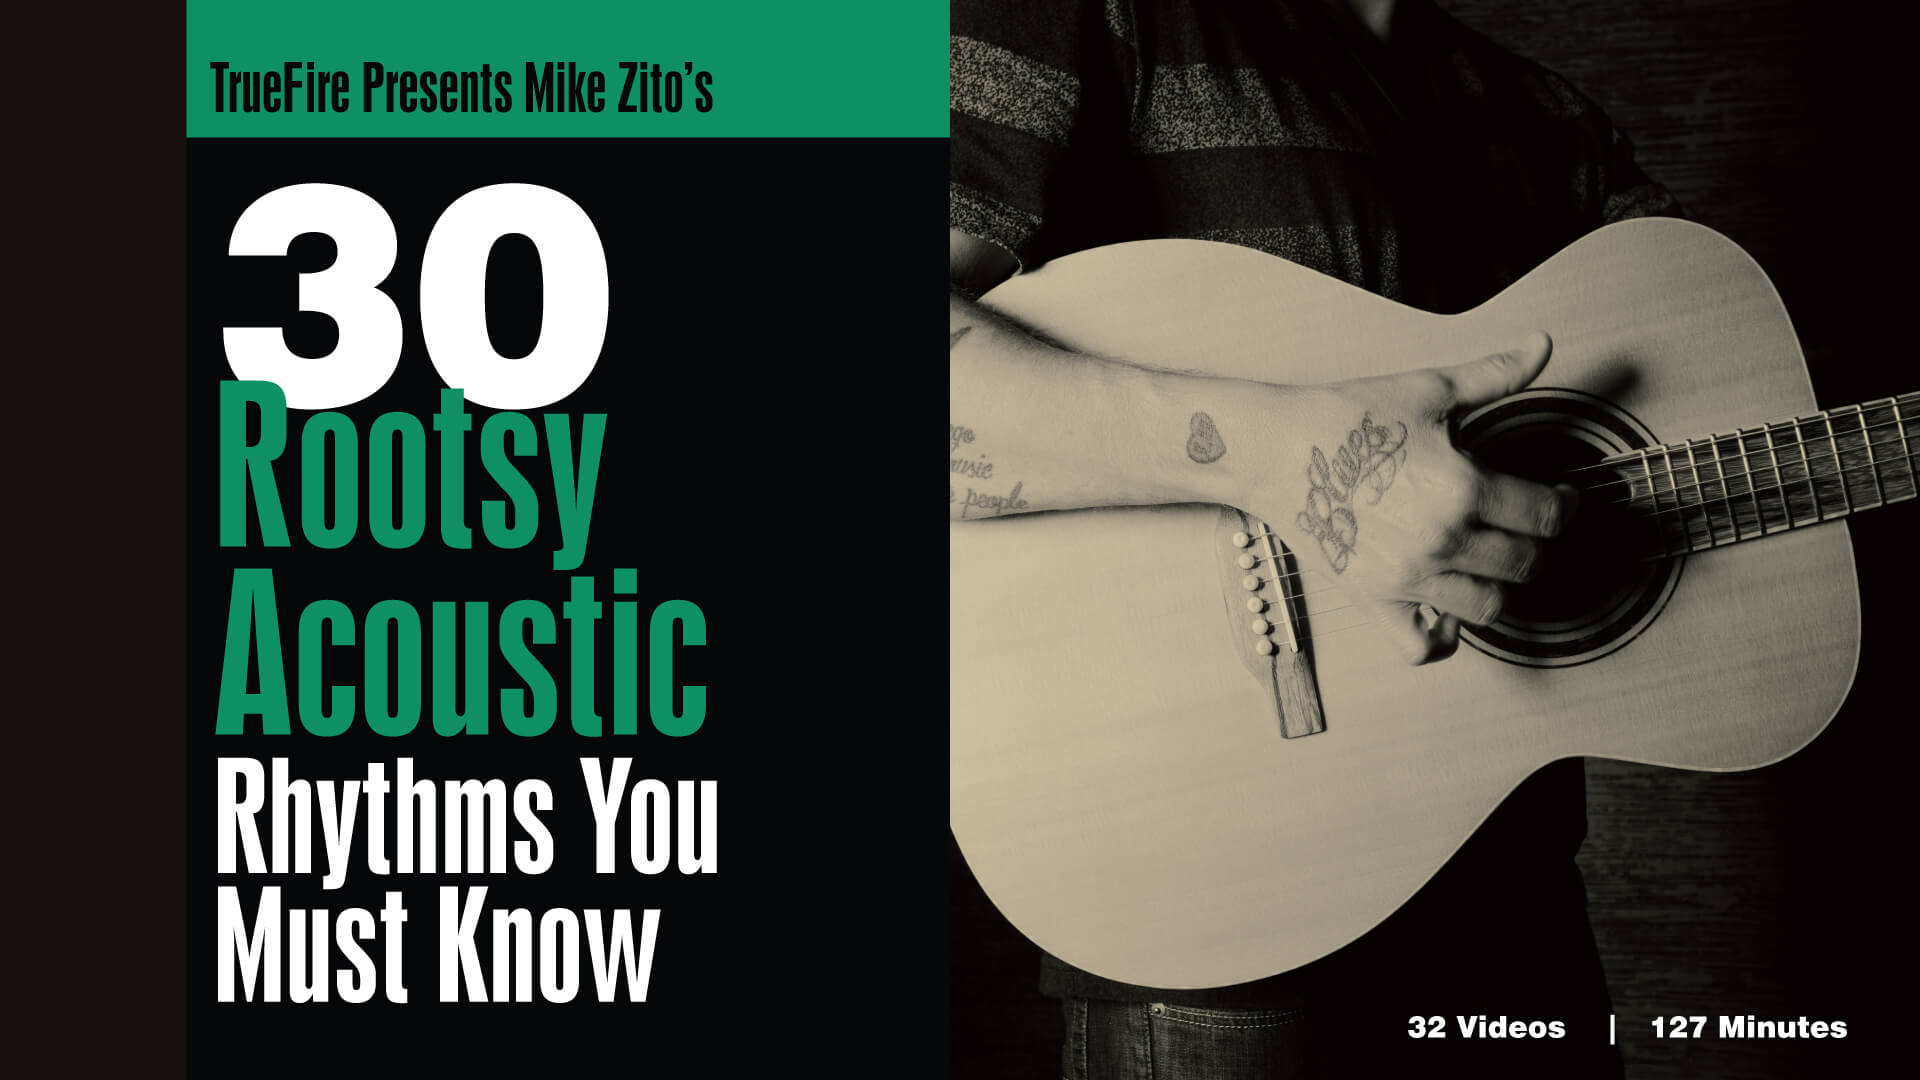 30 Rootsy Acoustic Rhythms Guitar Lessons Mike Zito Truefire